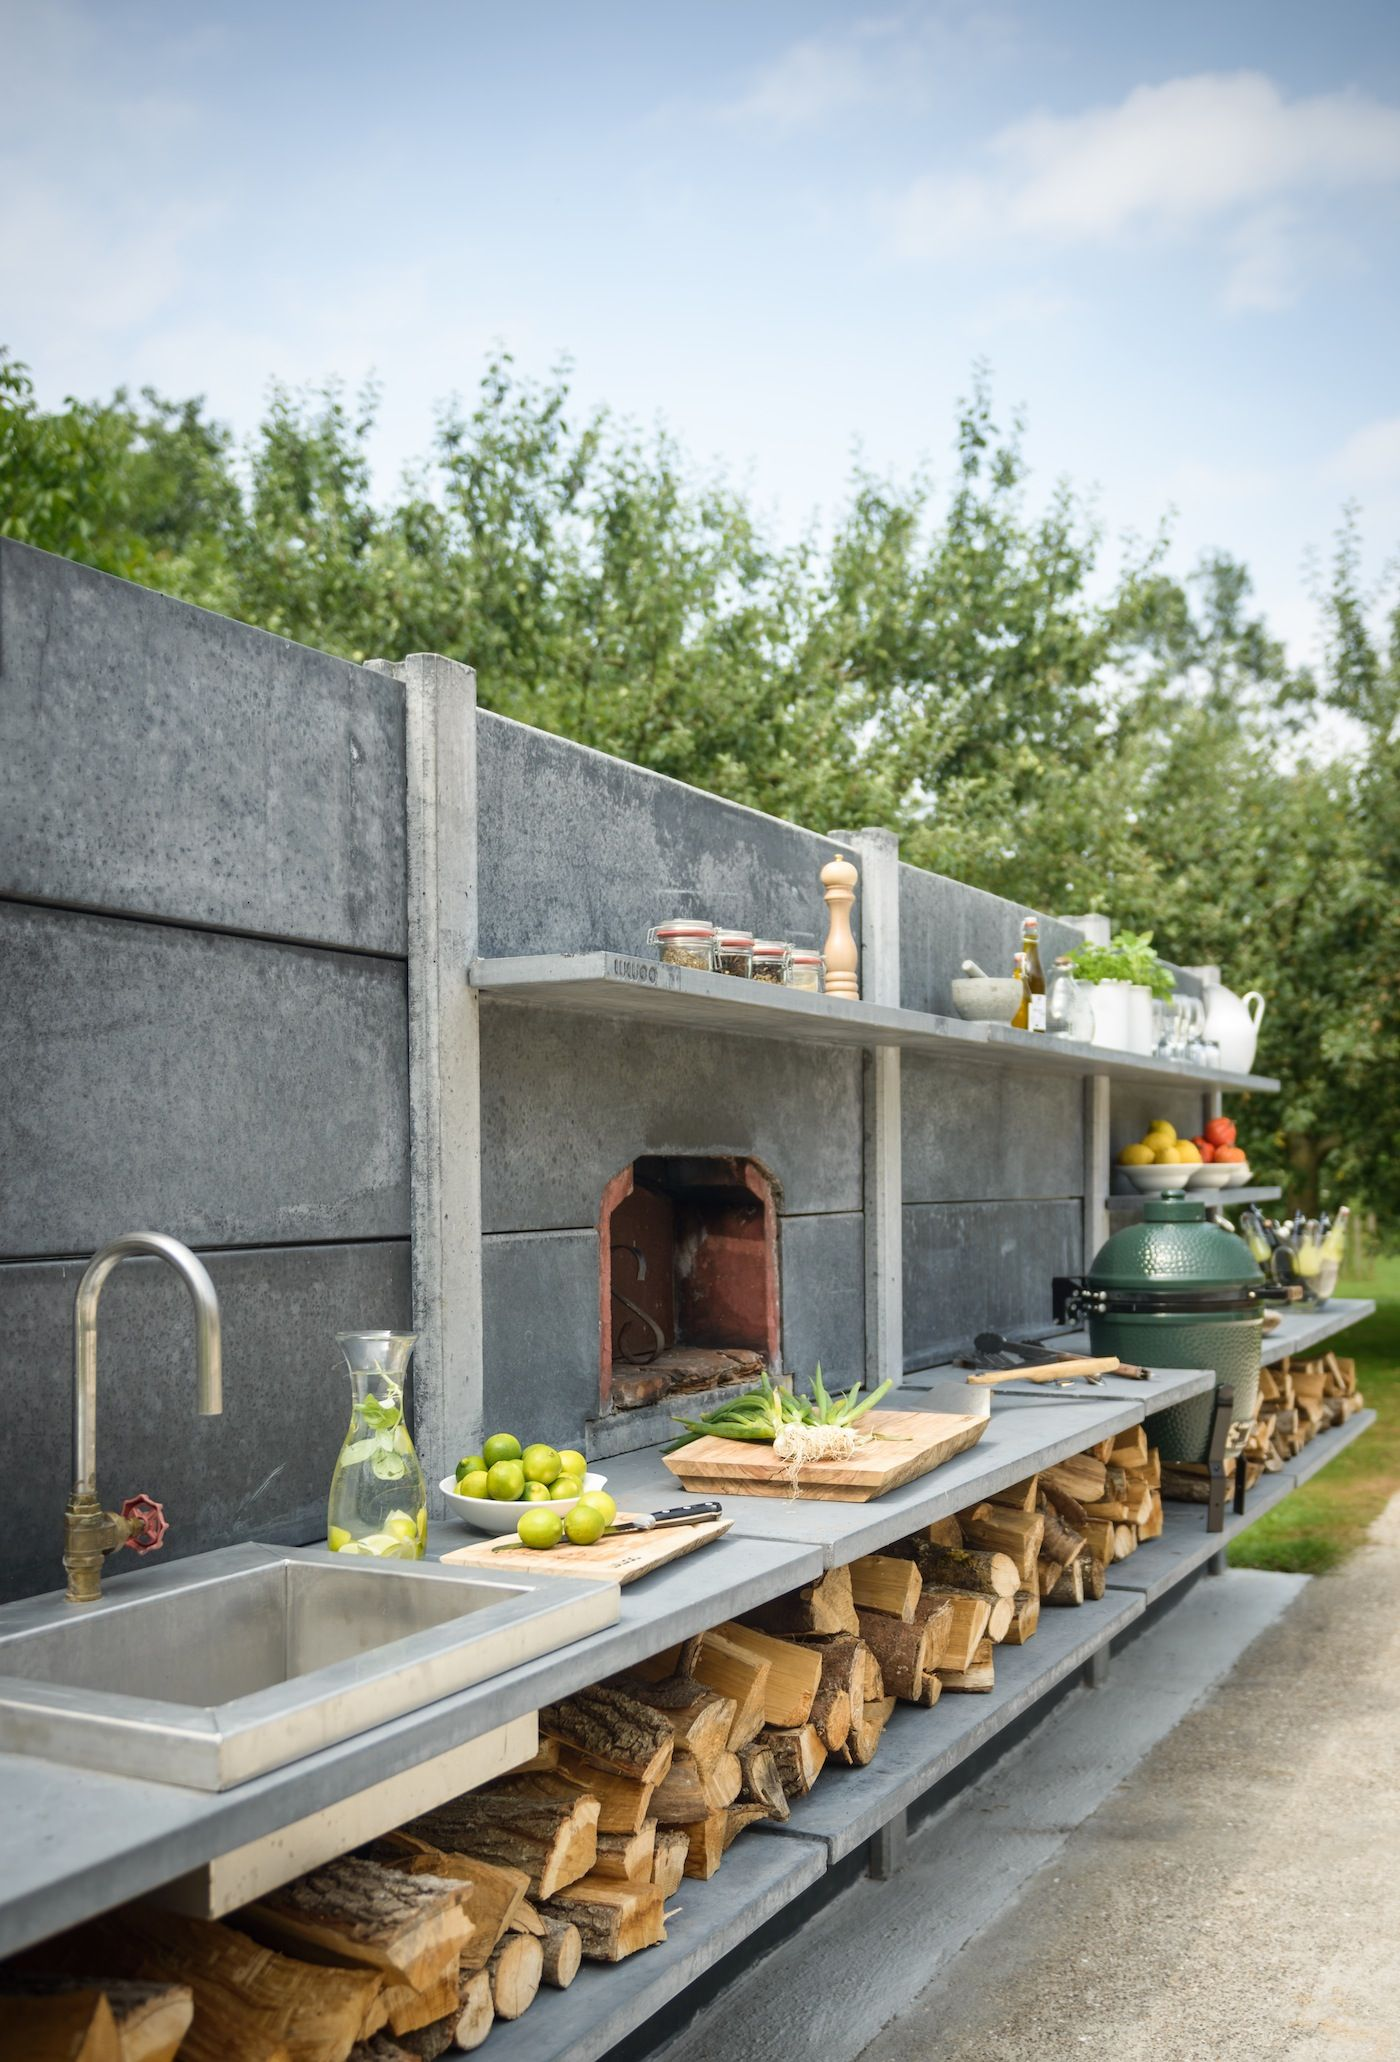 Outdoor Kitchen Metal Frame A Nice Chicago Outdoor Kitchen In My Article Dressed To Grill